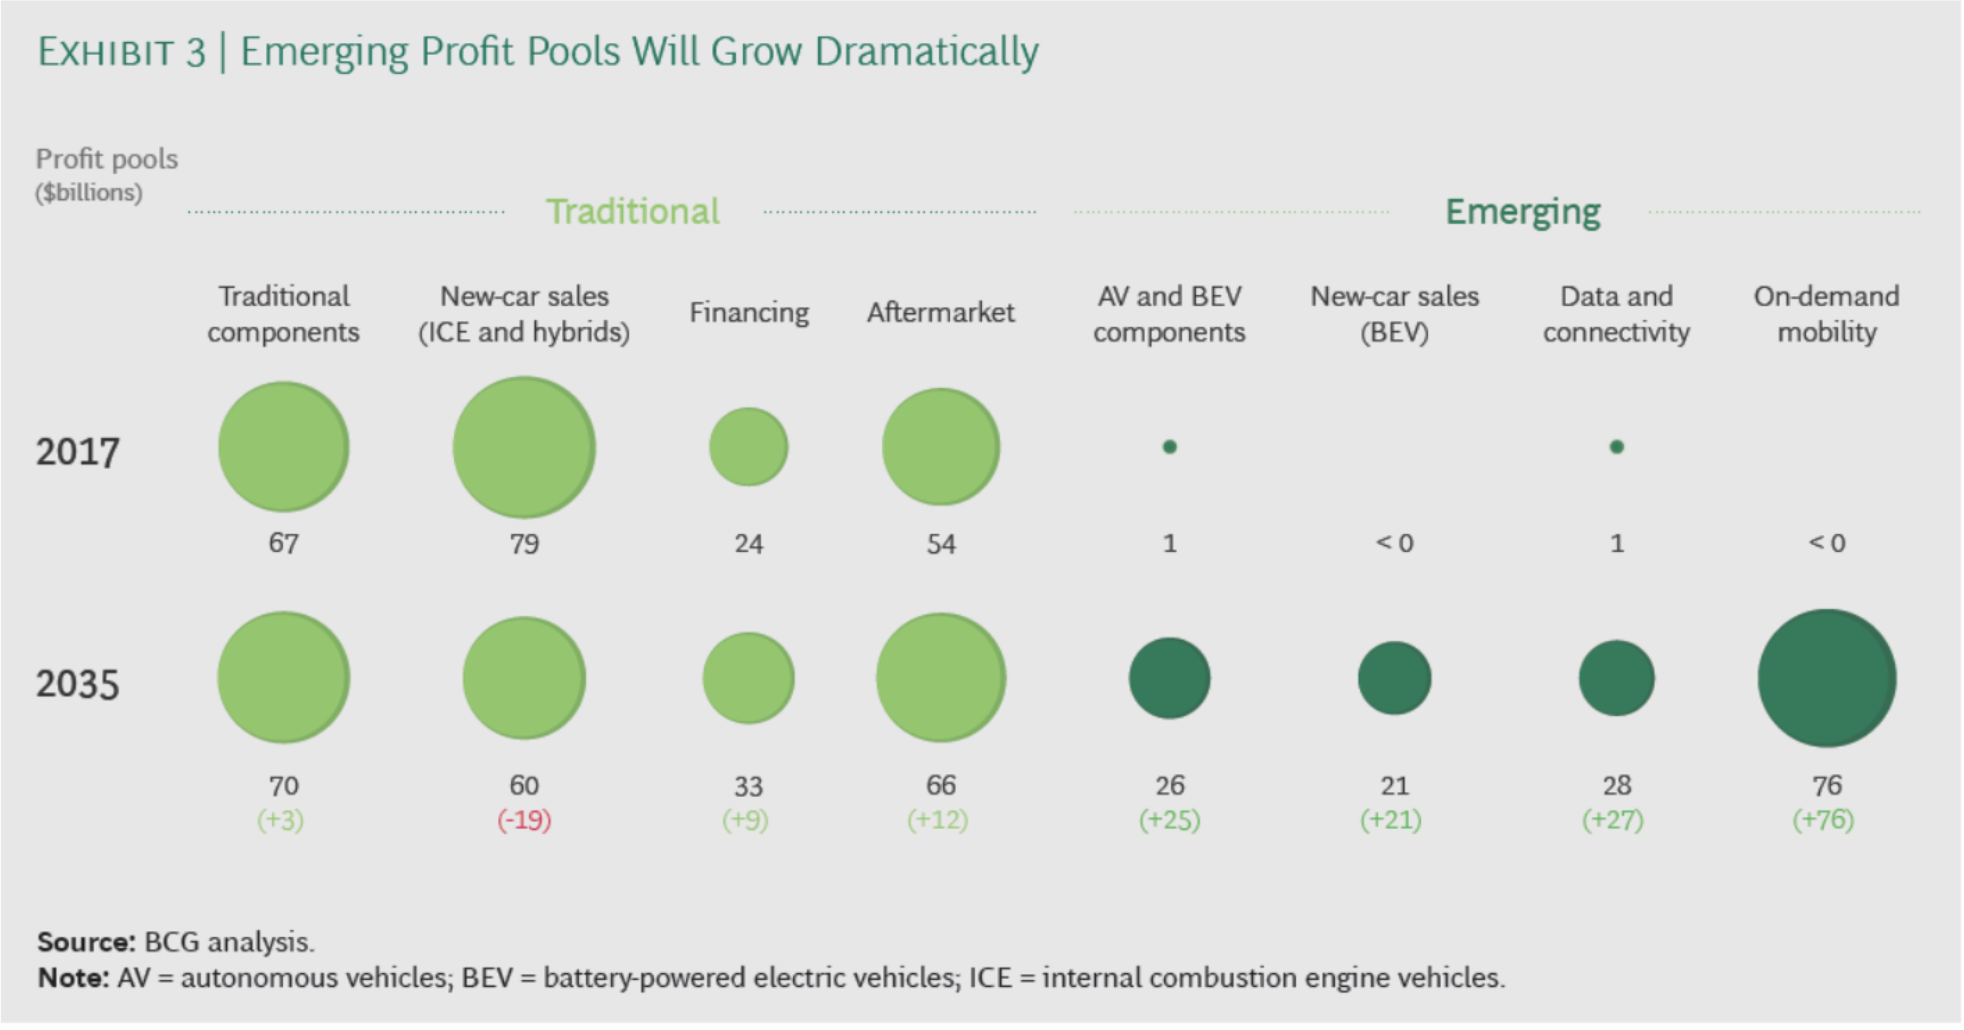 As the mobility sector transforms dramatically, so will its sources of profit